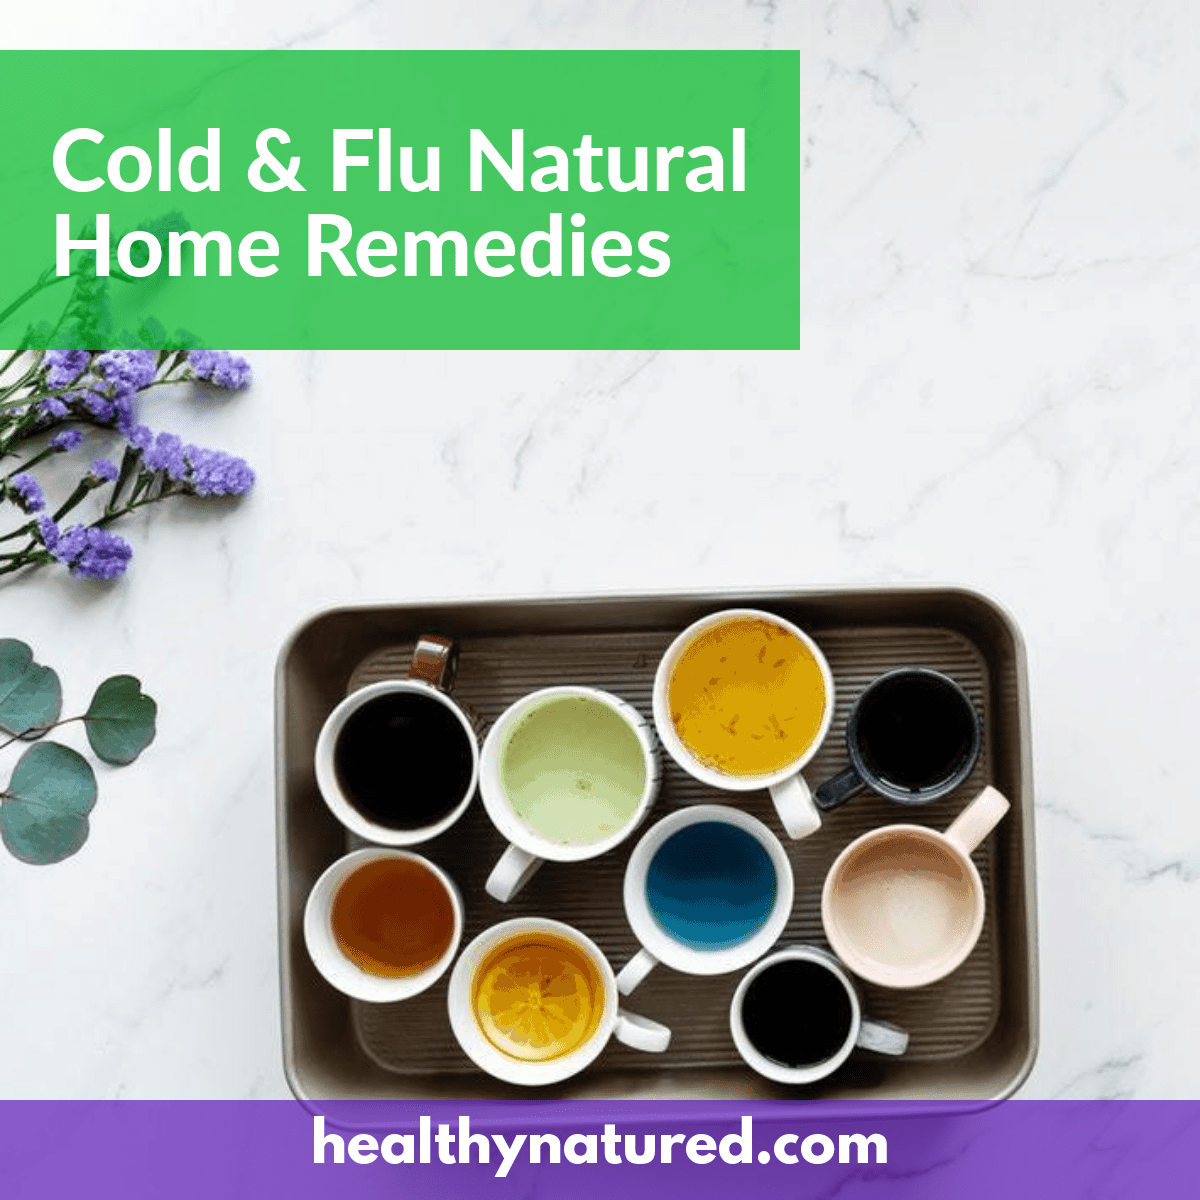 Cold And Flu Symptoms - Feel Great Again With Natural Home Remedies